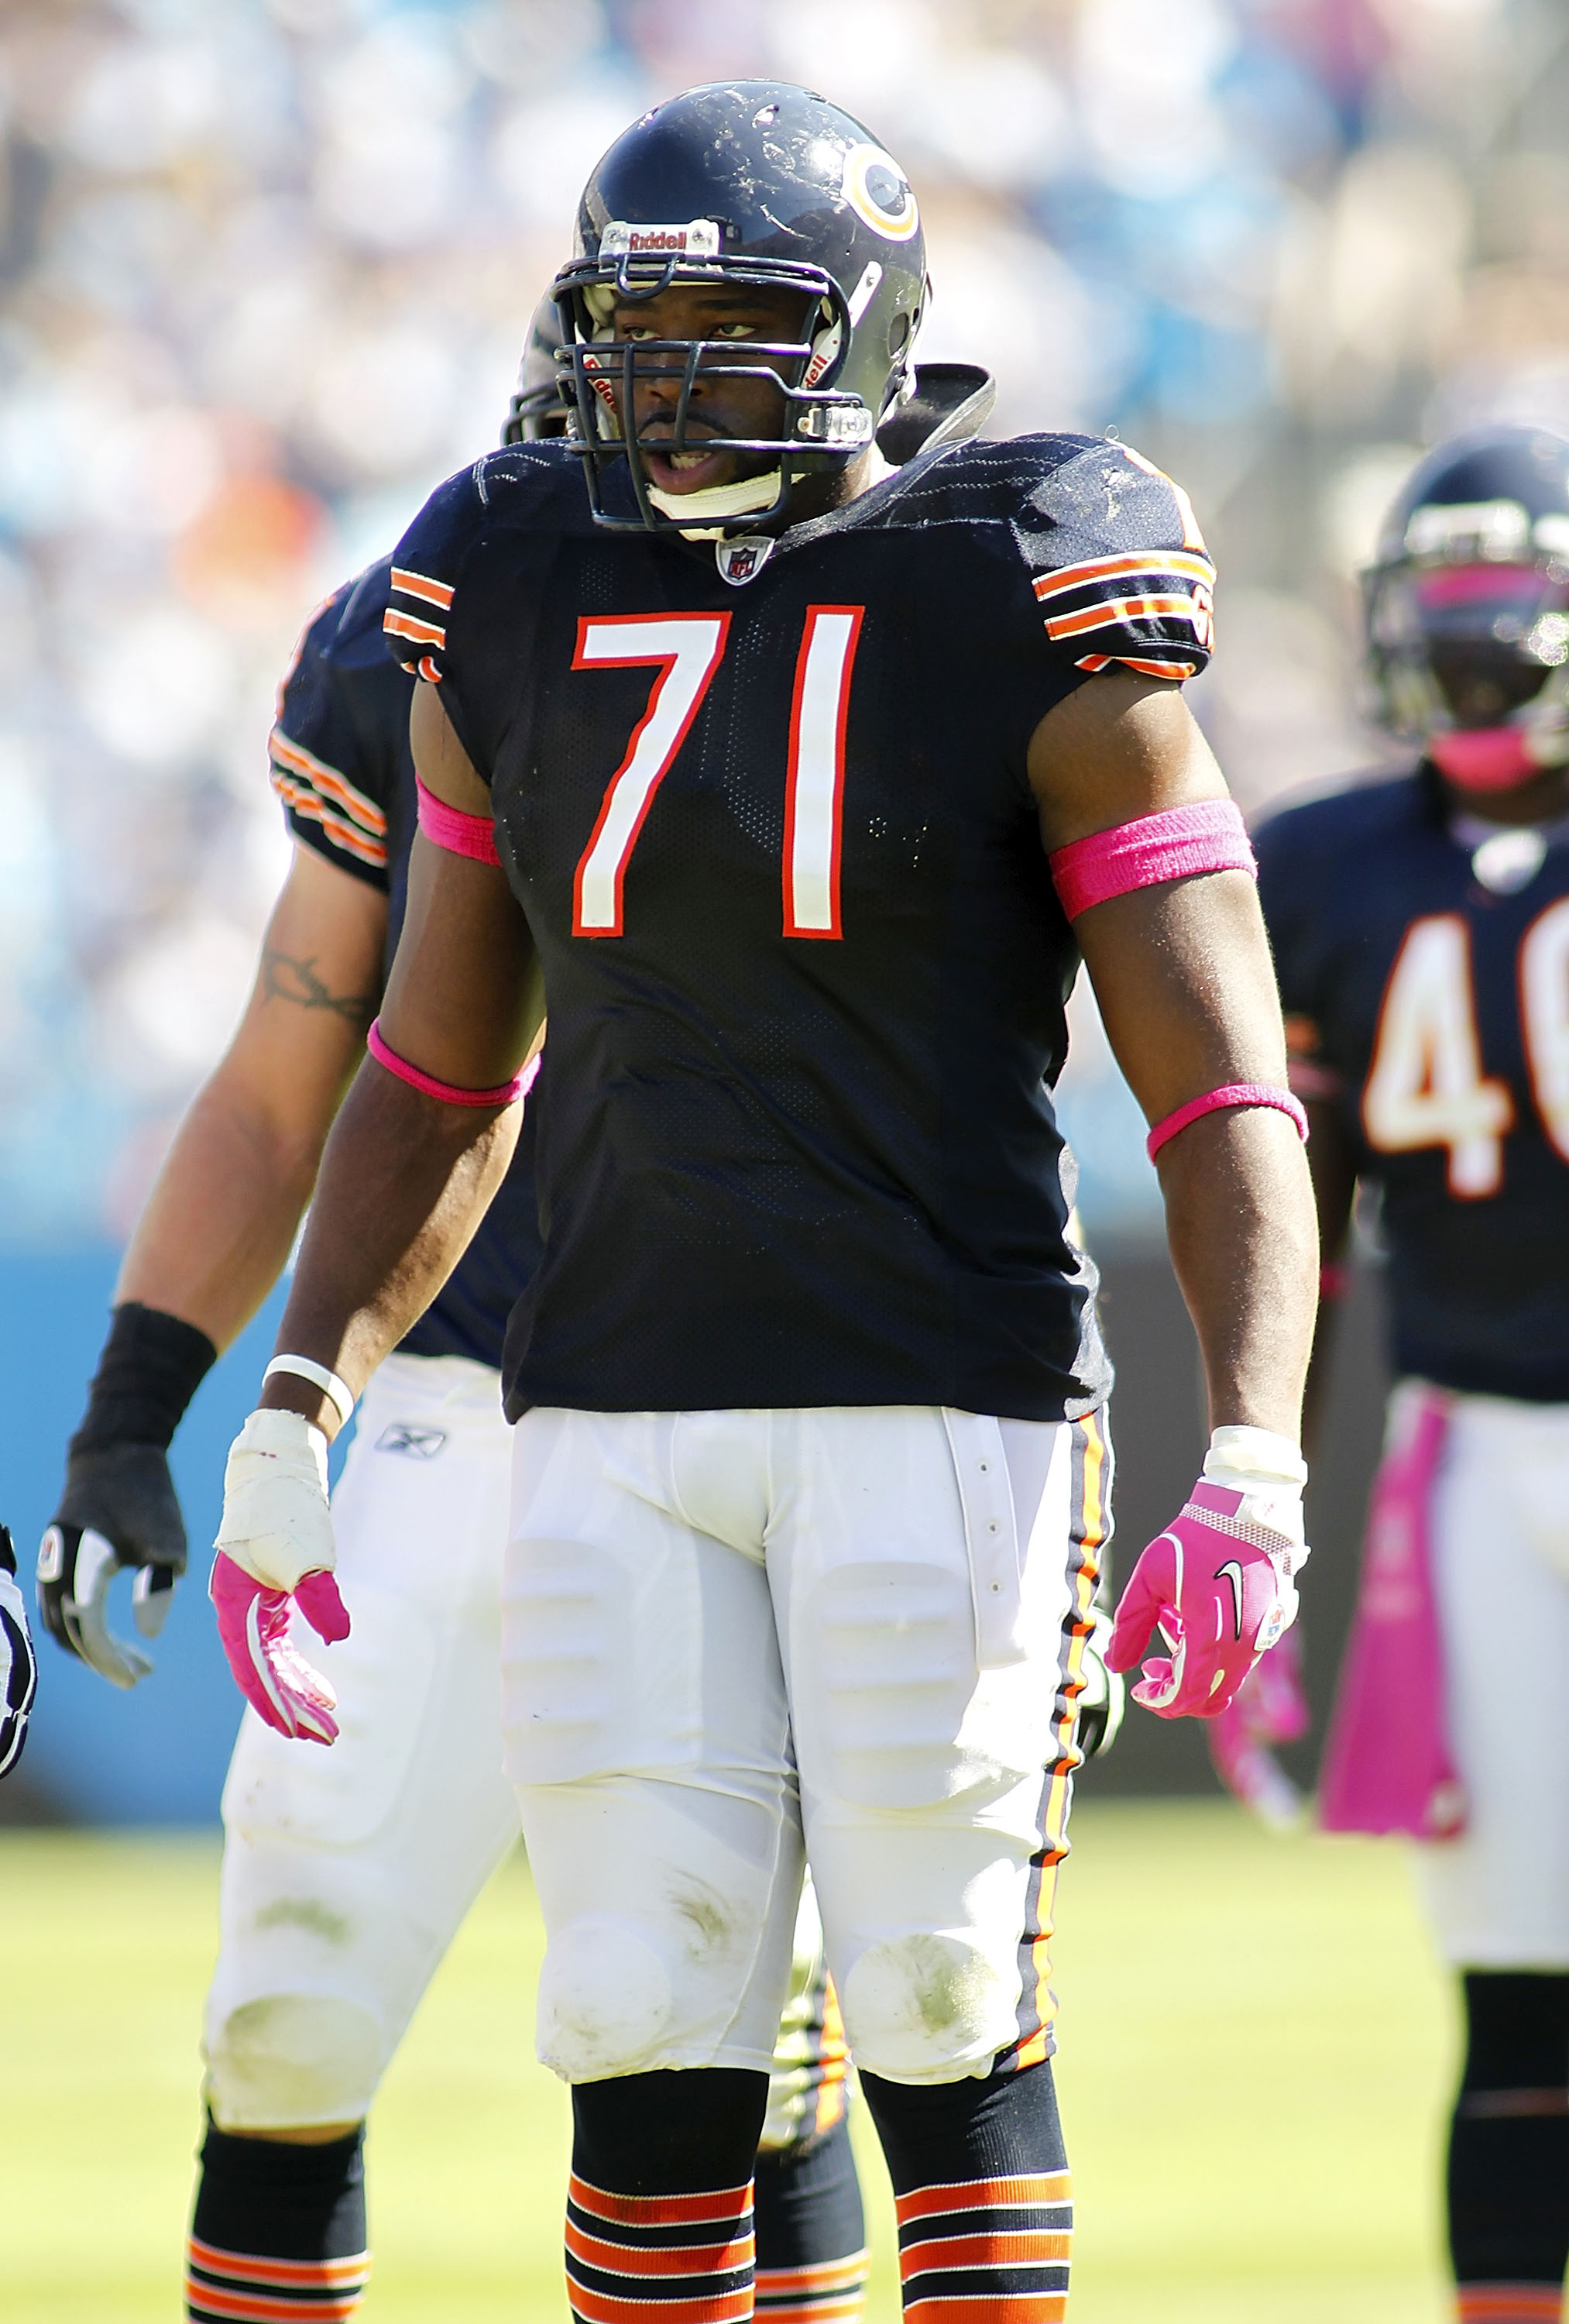 CHARLOTTE, NC - OCTOBER 10: Defensive tackle Israel Idonije #71 of the Chicago Bears stands on the field against the Carolina Panthers at Bank of America Stadium on October 10, 2010 in Charlotte, North Carolina. (Photo by Geoff Burke/Getty Images)